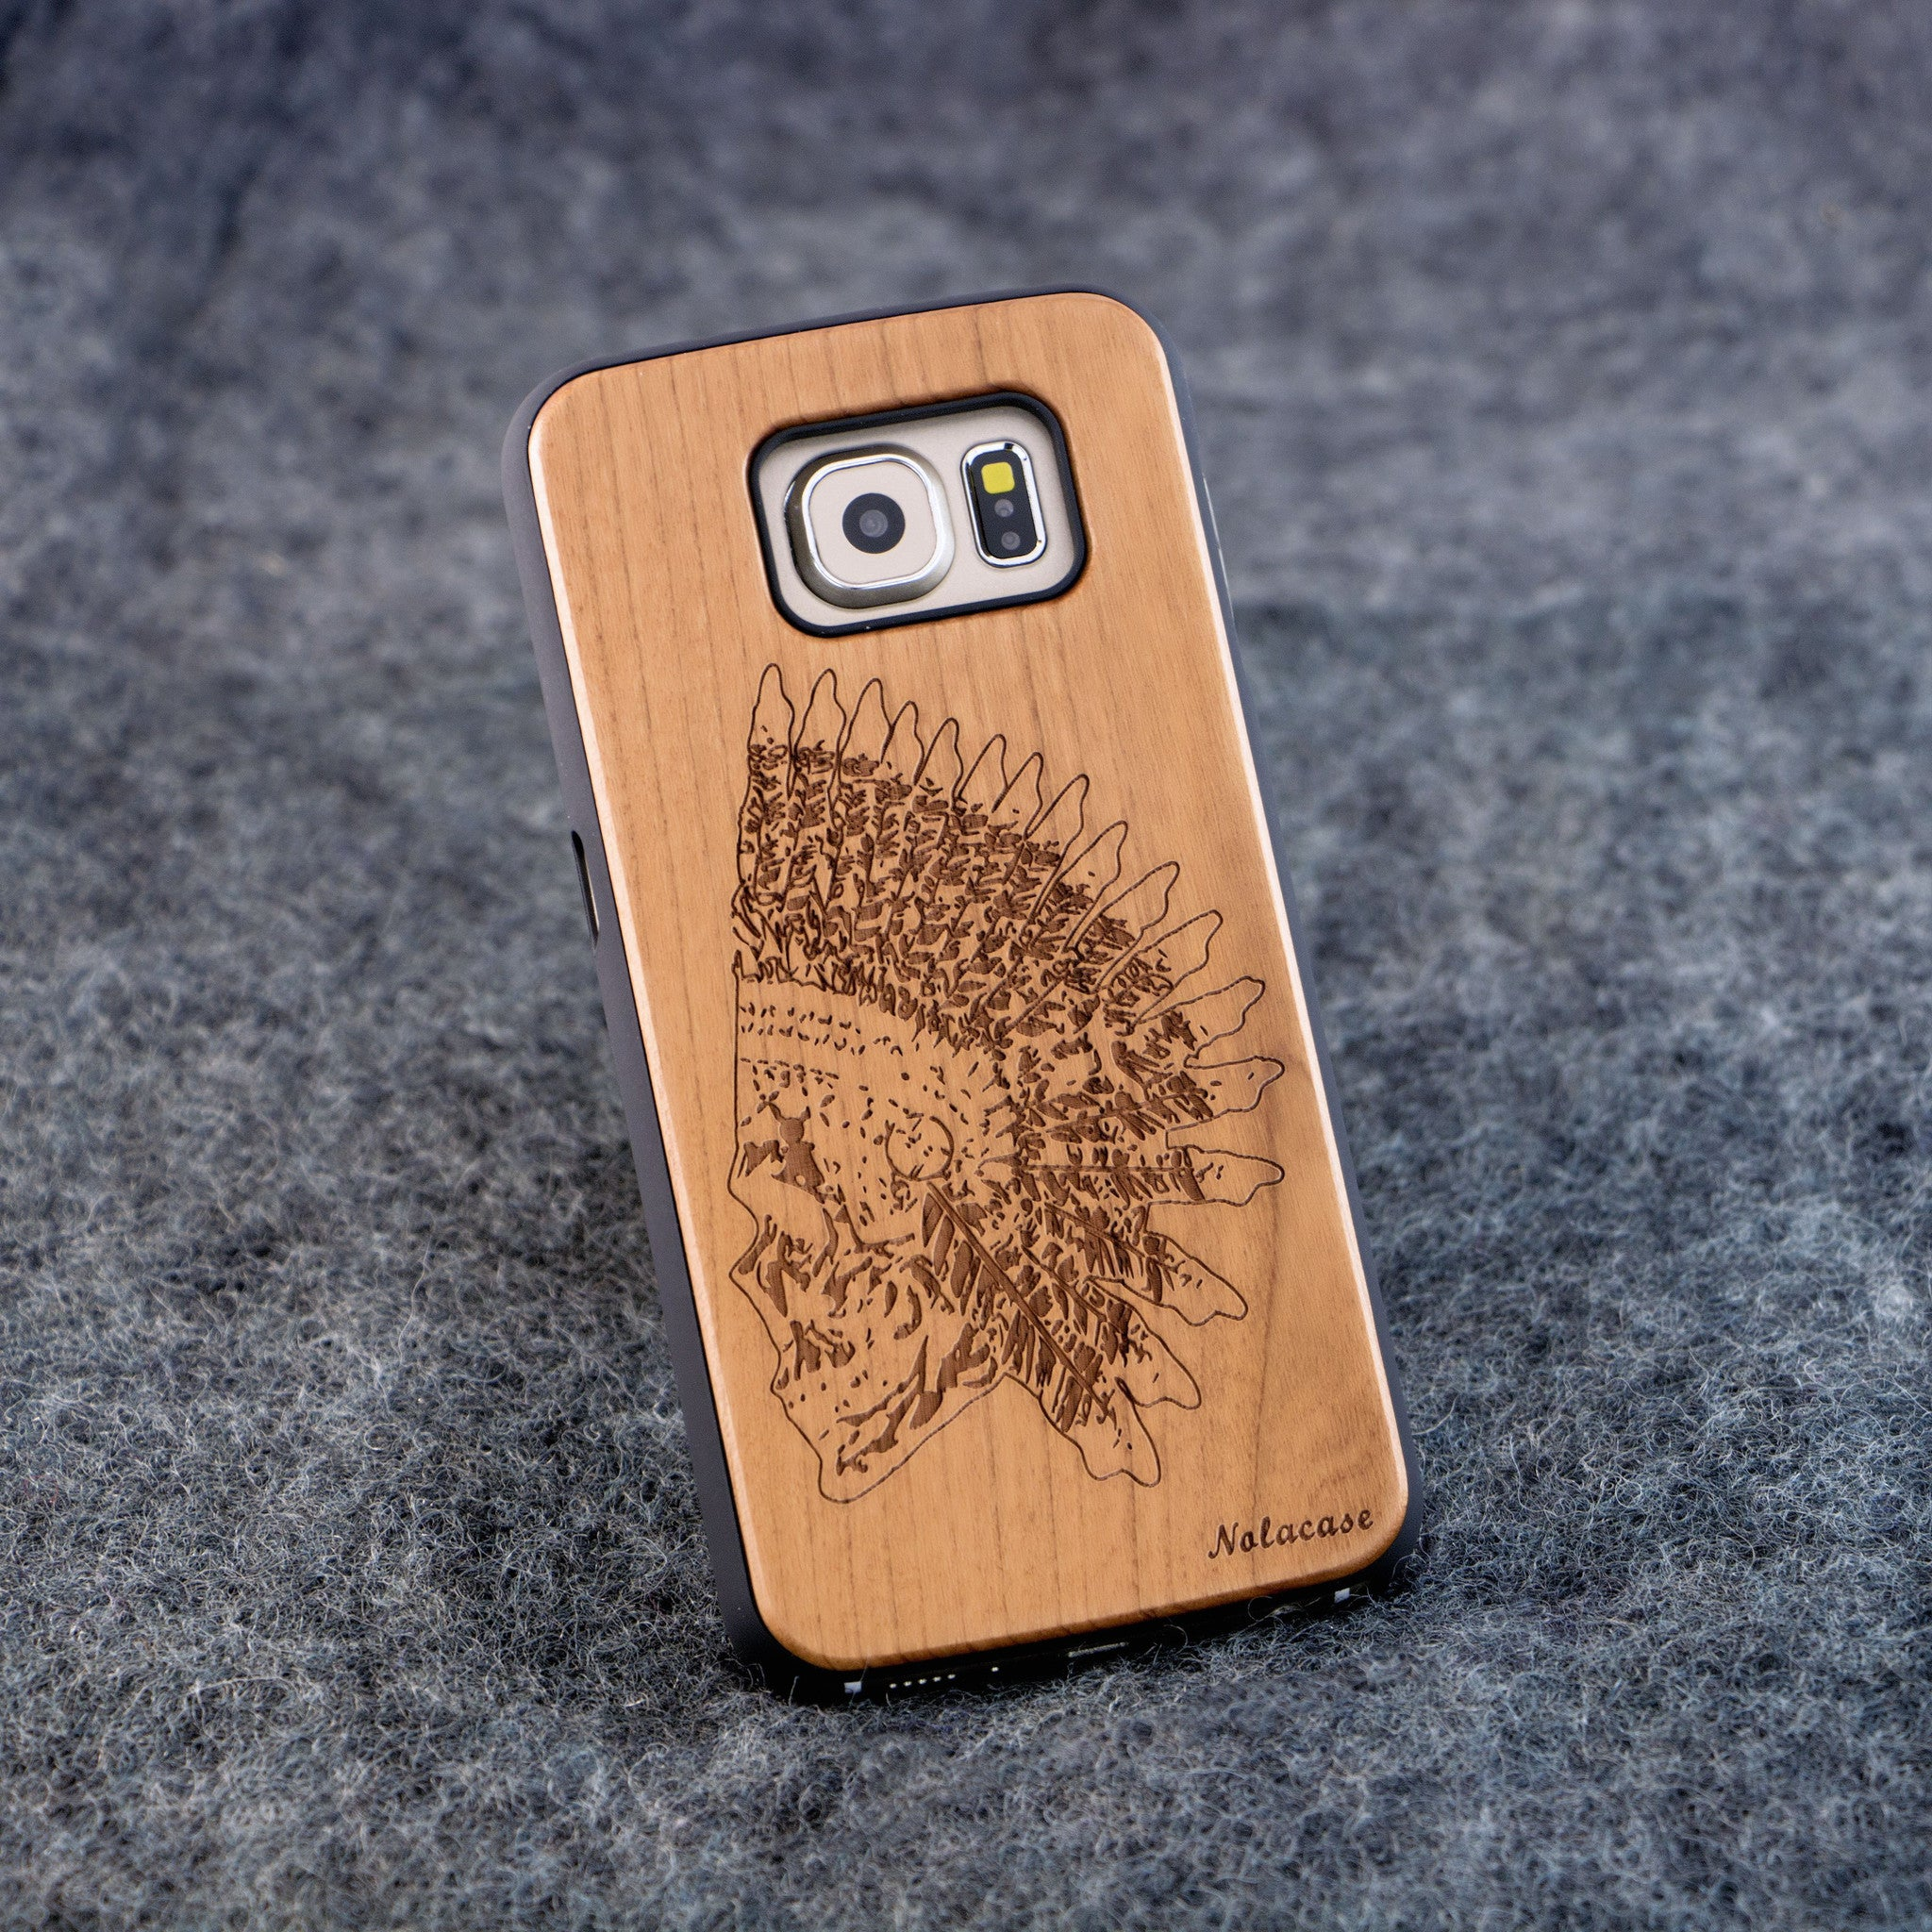 Samsung S6 Indian Skull Slim Wood Case - NOLACASE